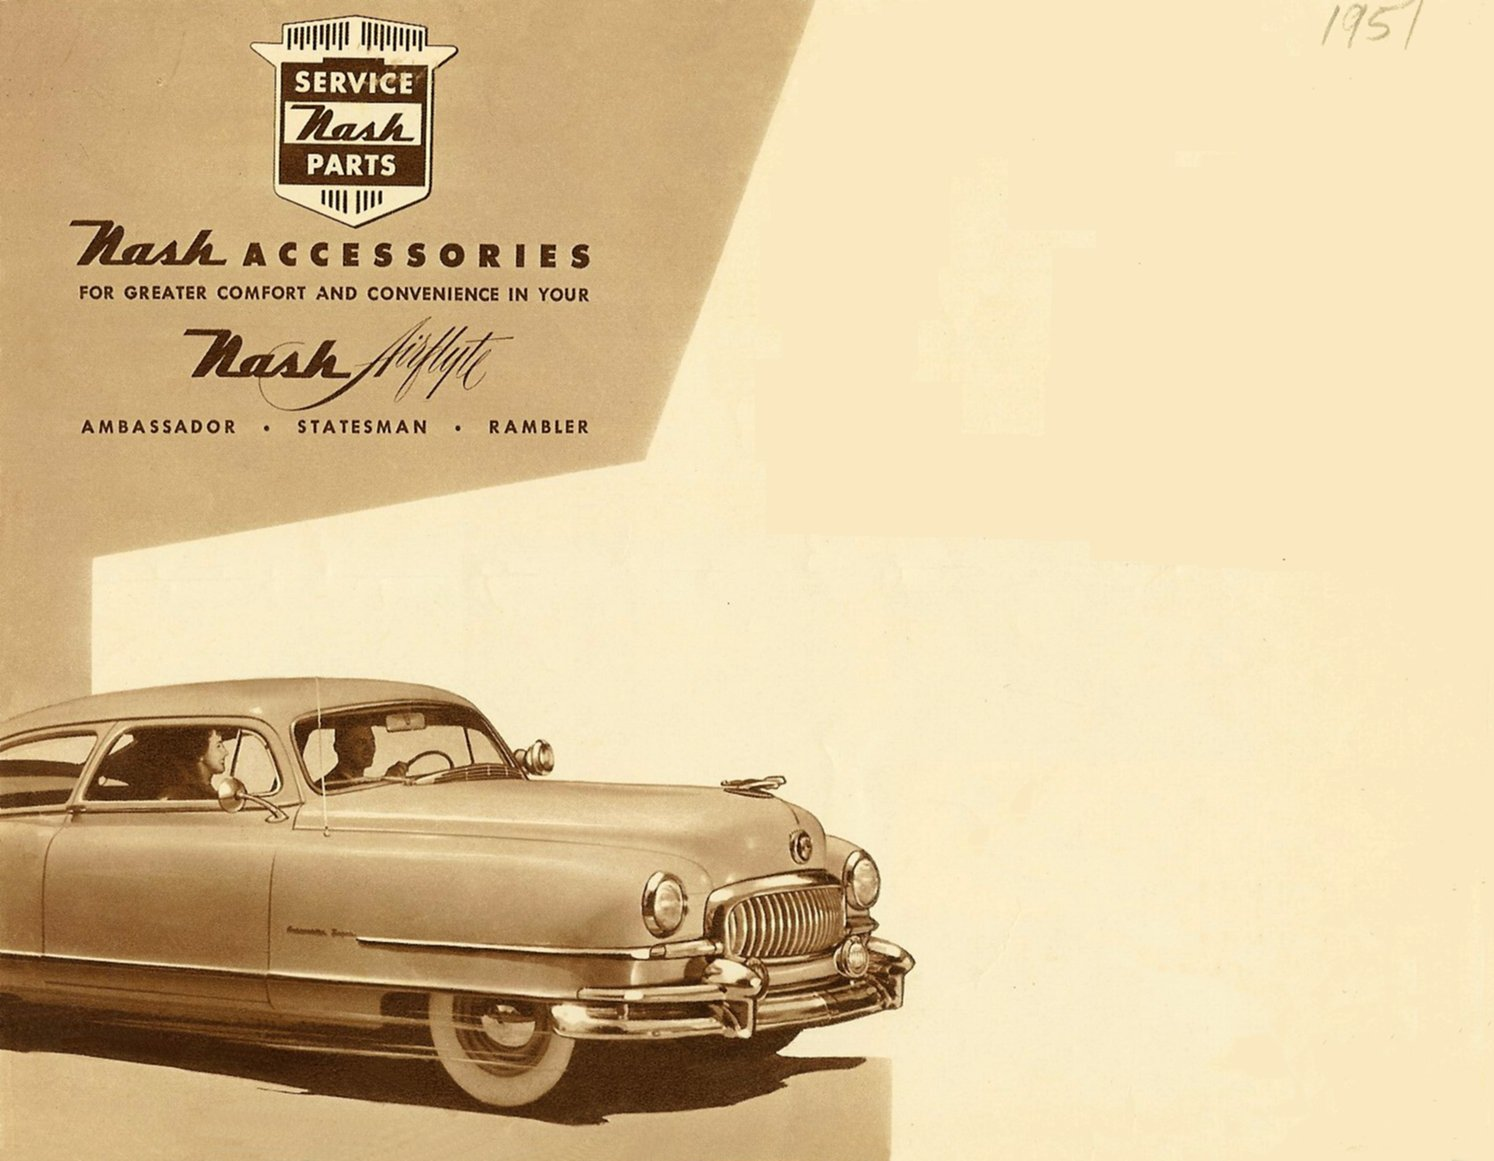 1951 NASH Accessories Nash Airflyte Ambassador – Statesman – Rambler Front Cover Folded: 10″x7.75″ Open: 20″x15.5 NAP50-526-400M-9-50